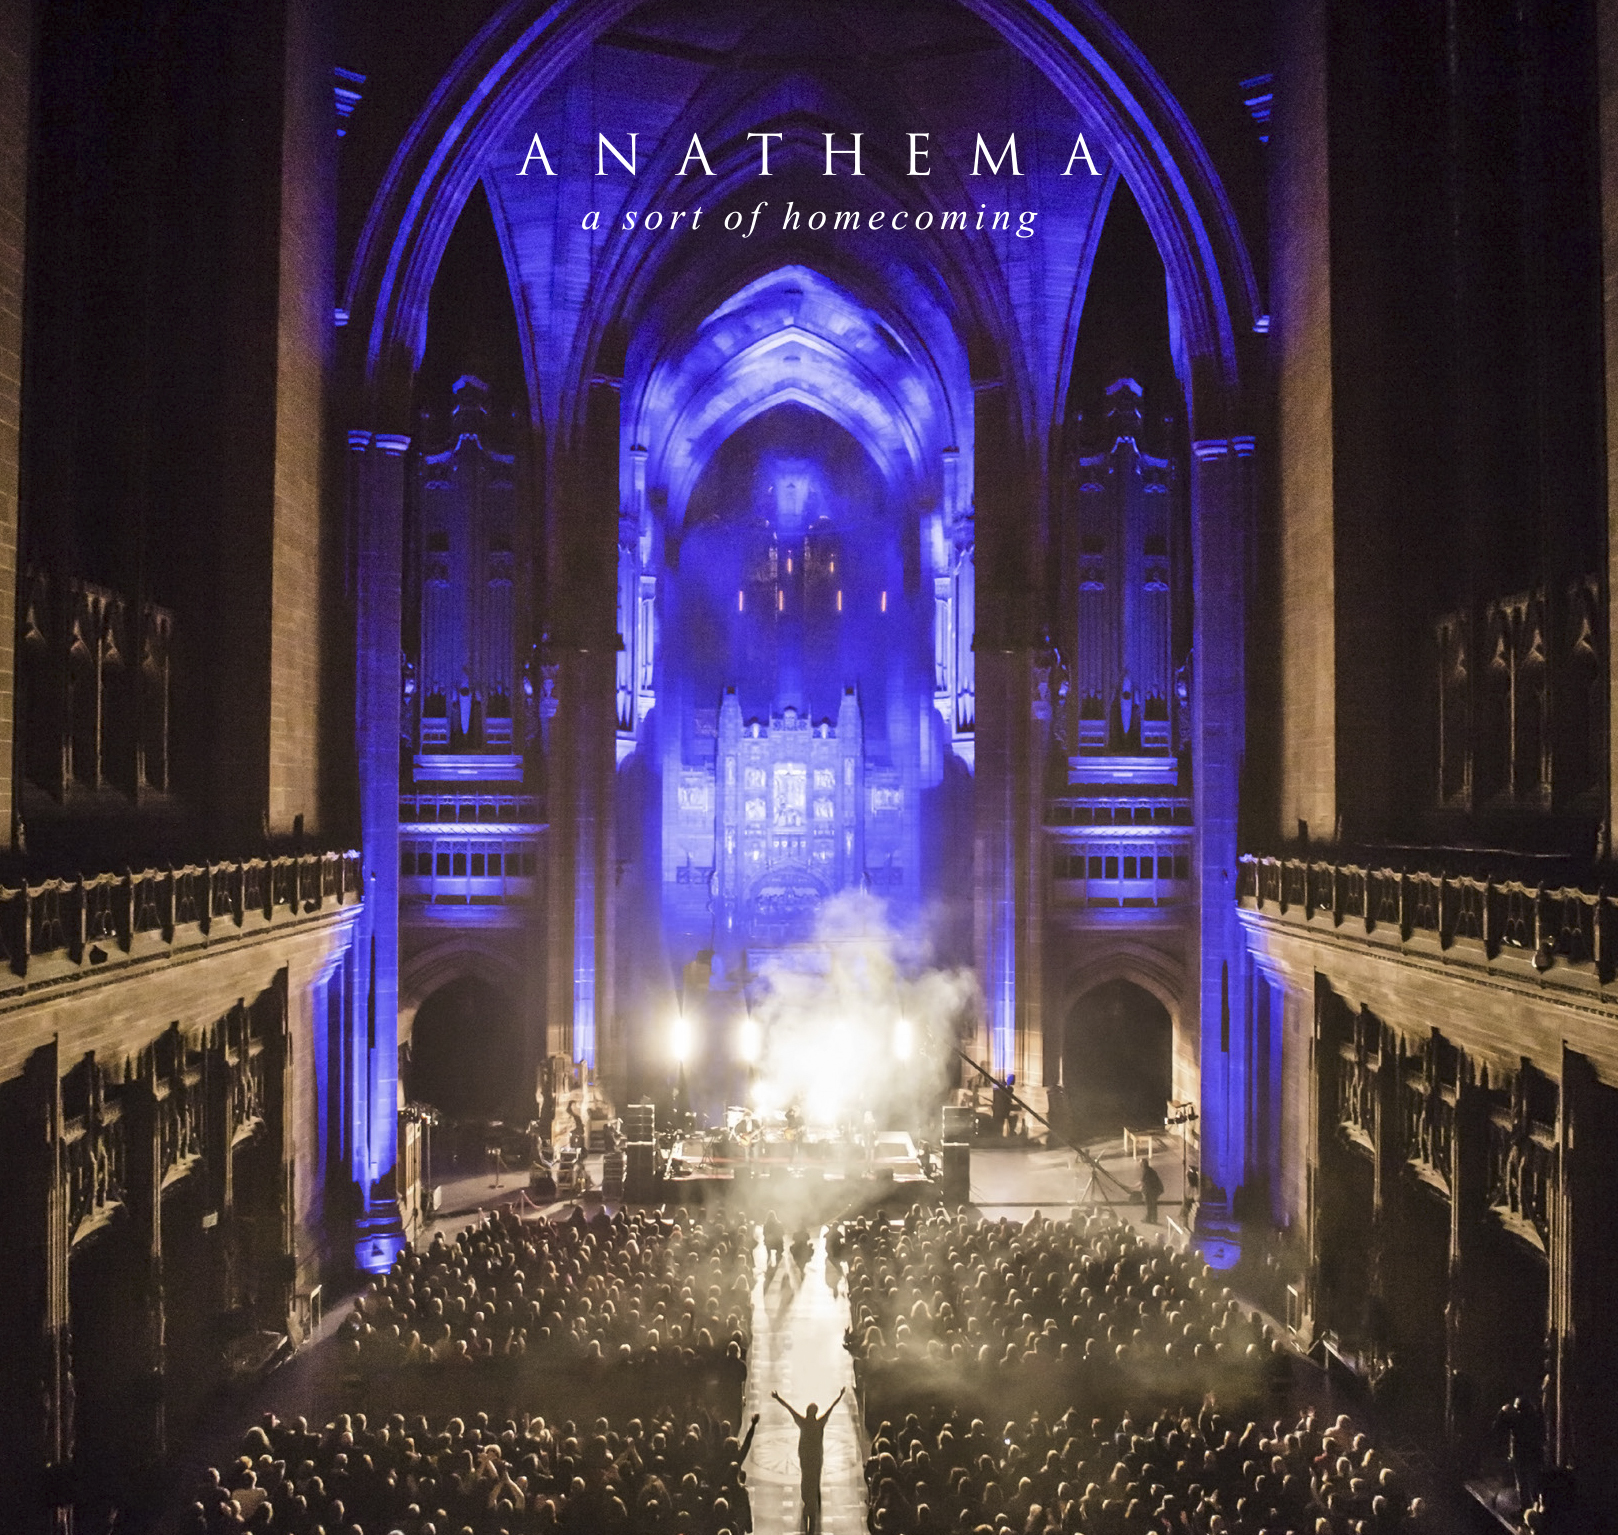 Anathema line-up Autumn tour to road test new music